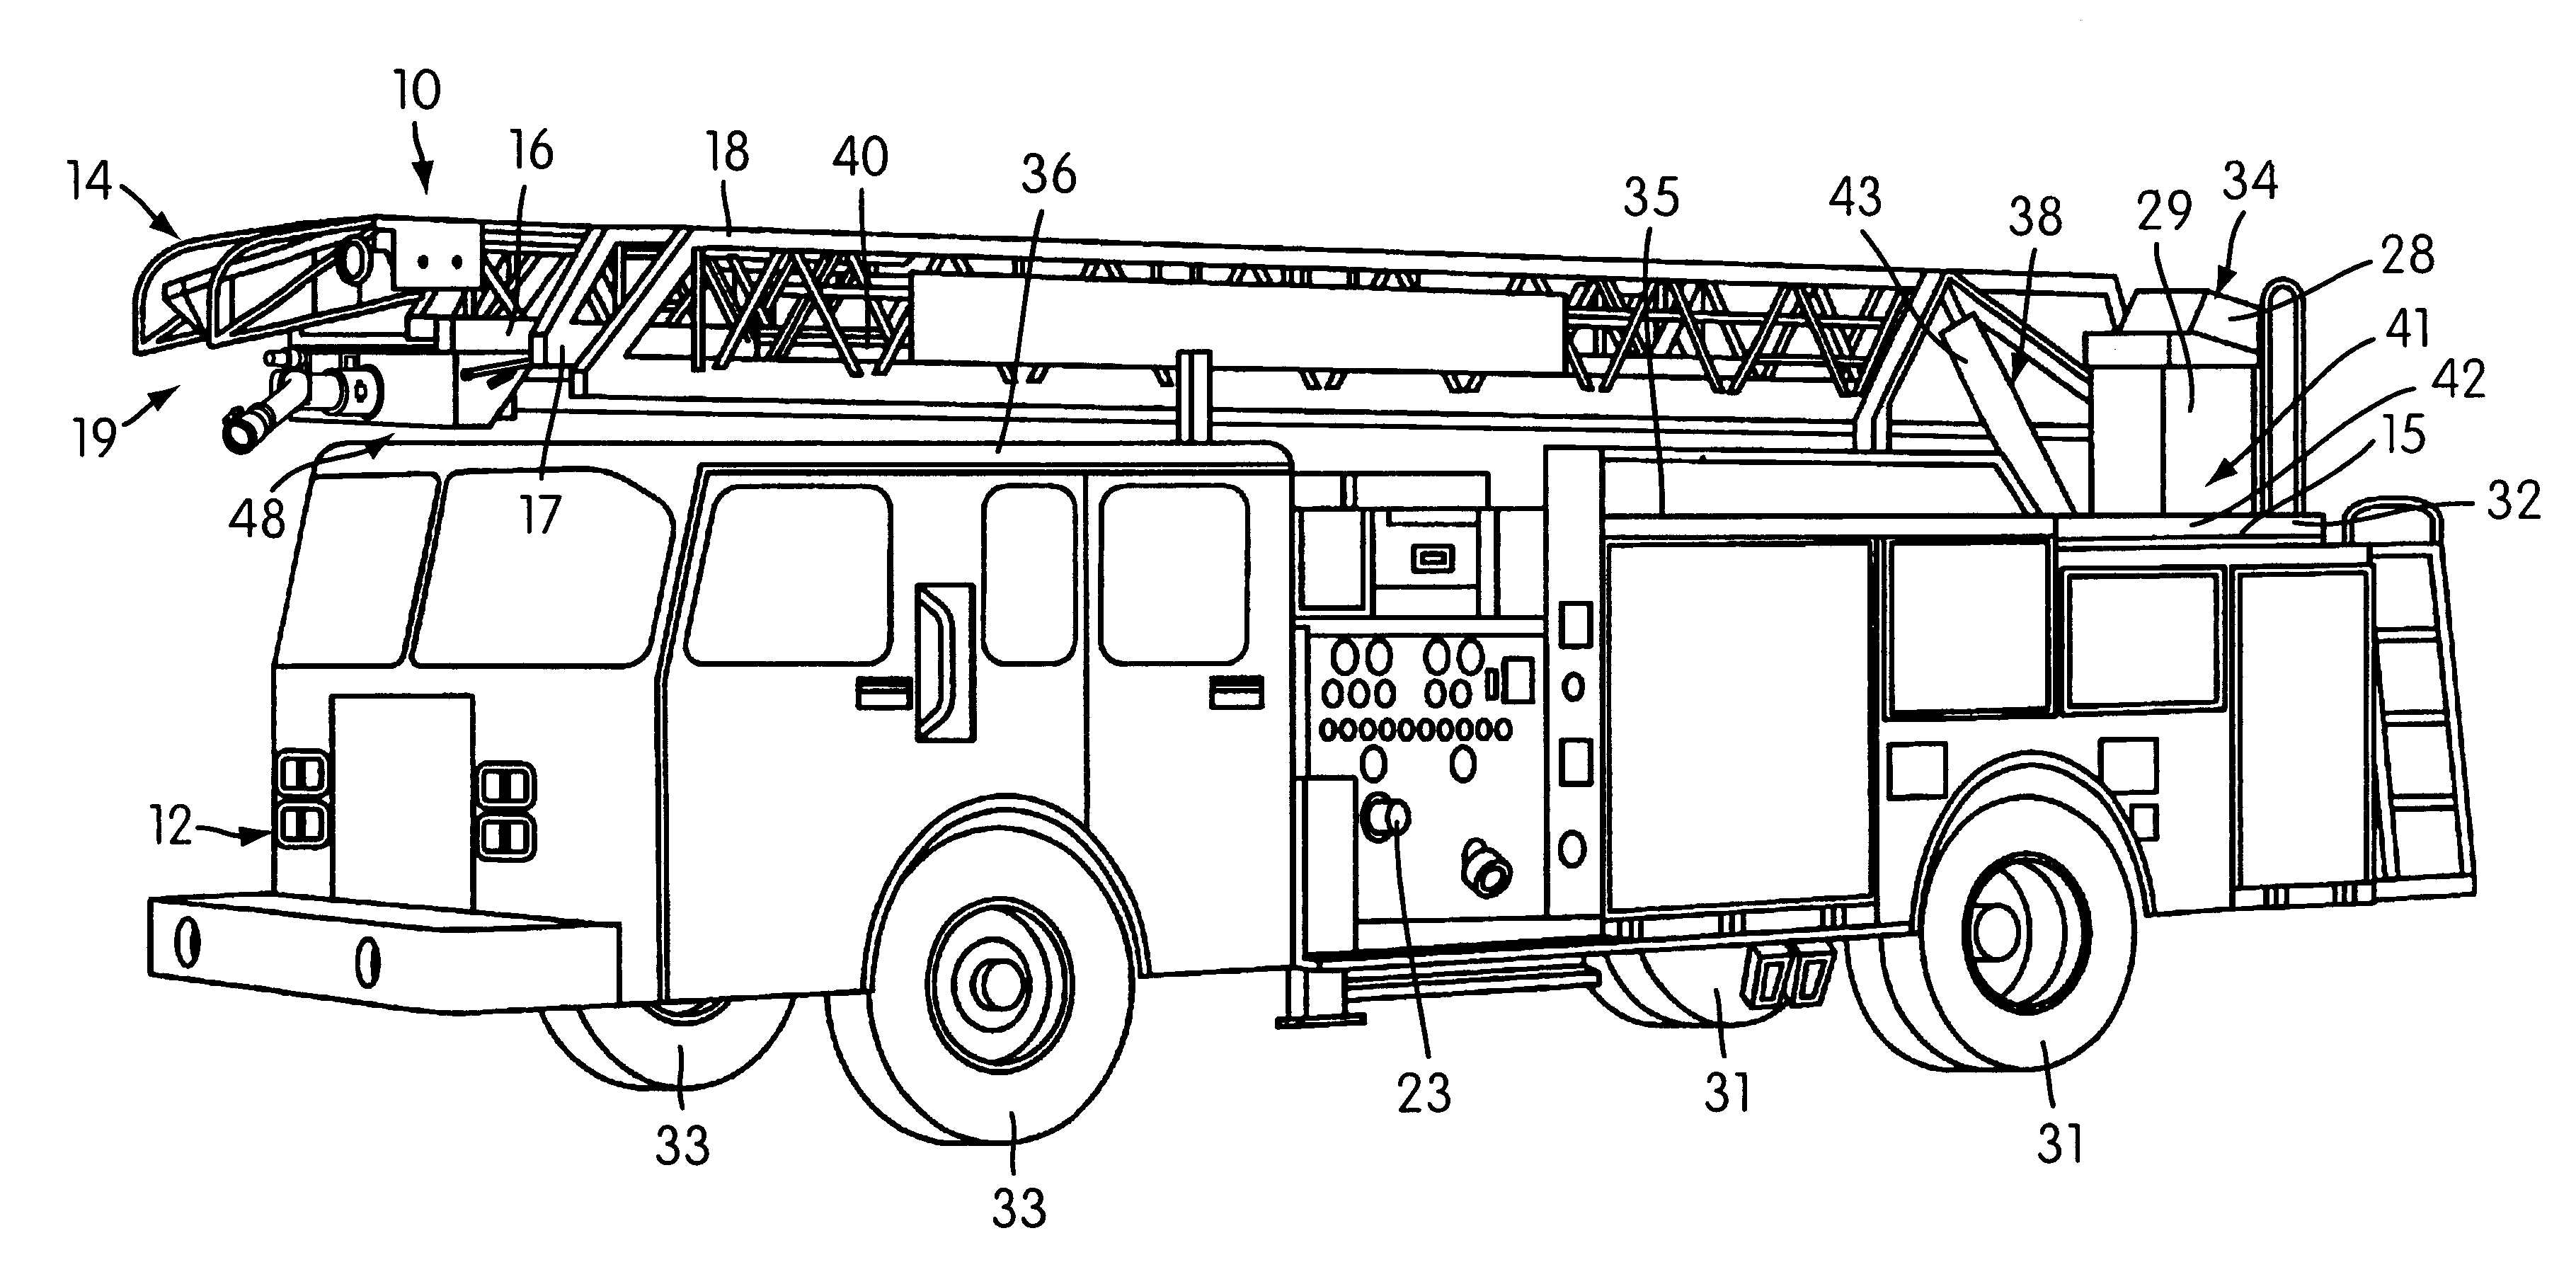 Trailer Truck Assembly Diagram Wiring Will Be A Thing Air Brakes Schematic Patent Us6755258 Aerial Ladder Fire Fighting Apparatus Tarctor Damage Axle Weight